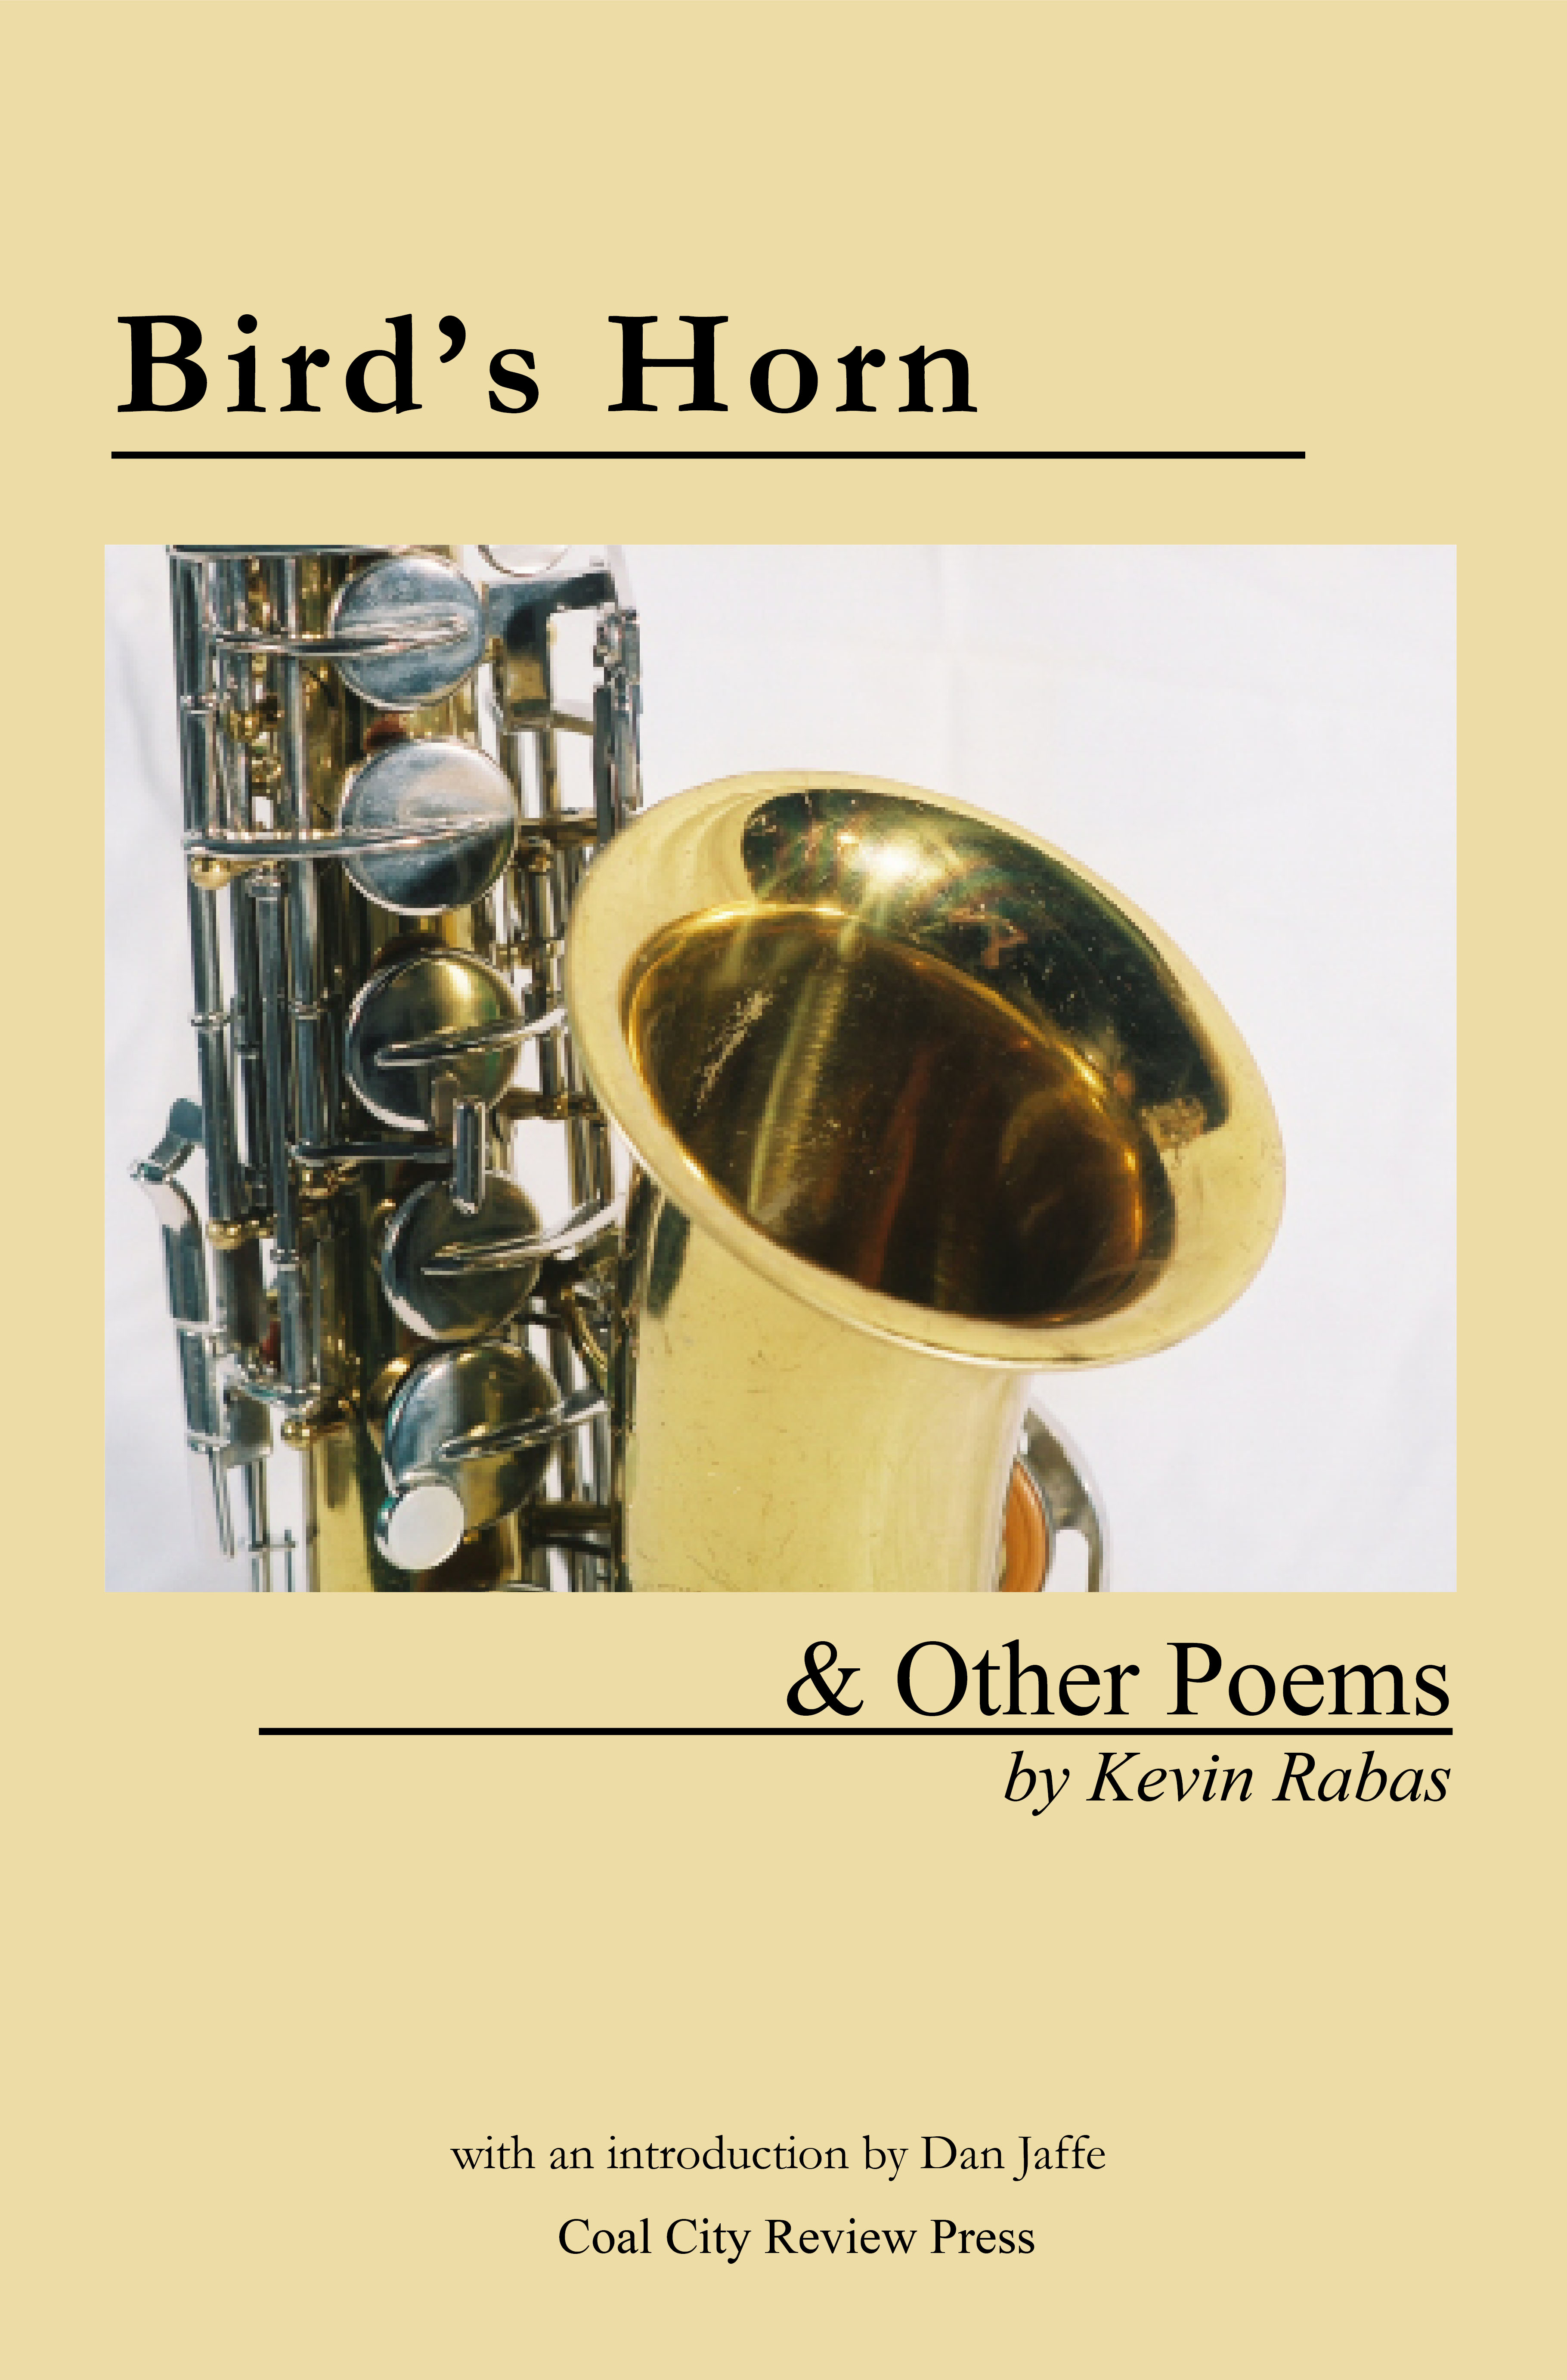 cover art for Bird's Horn & other poems by Kevin Rabas